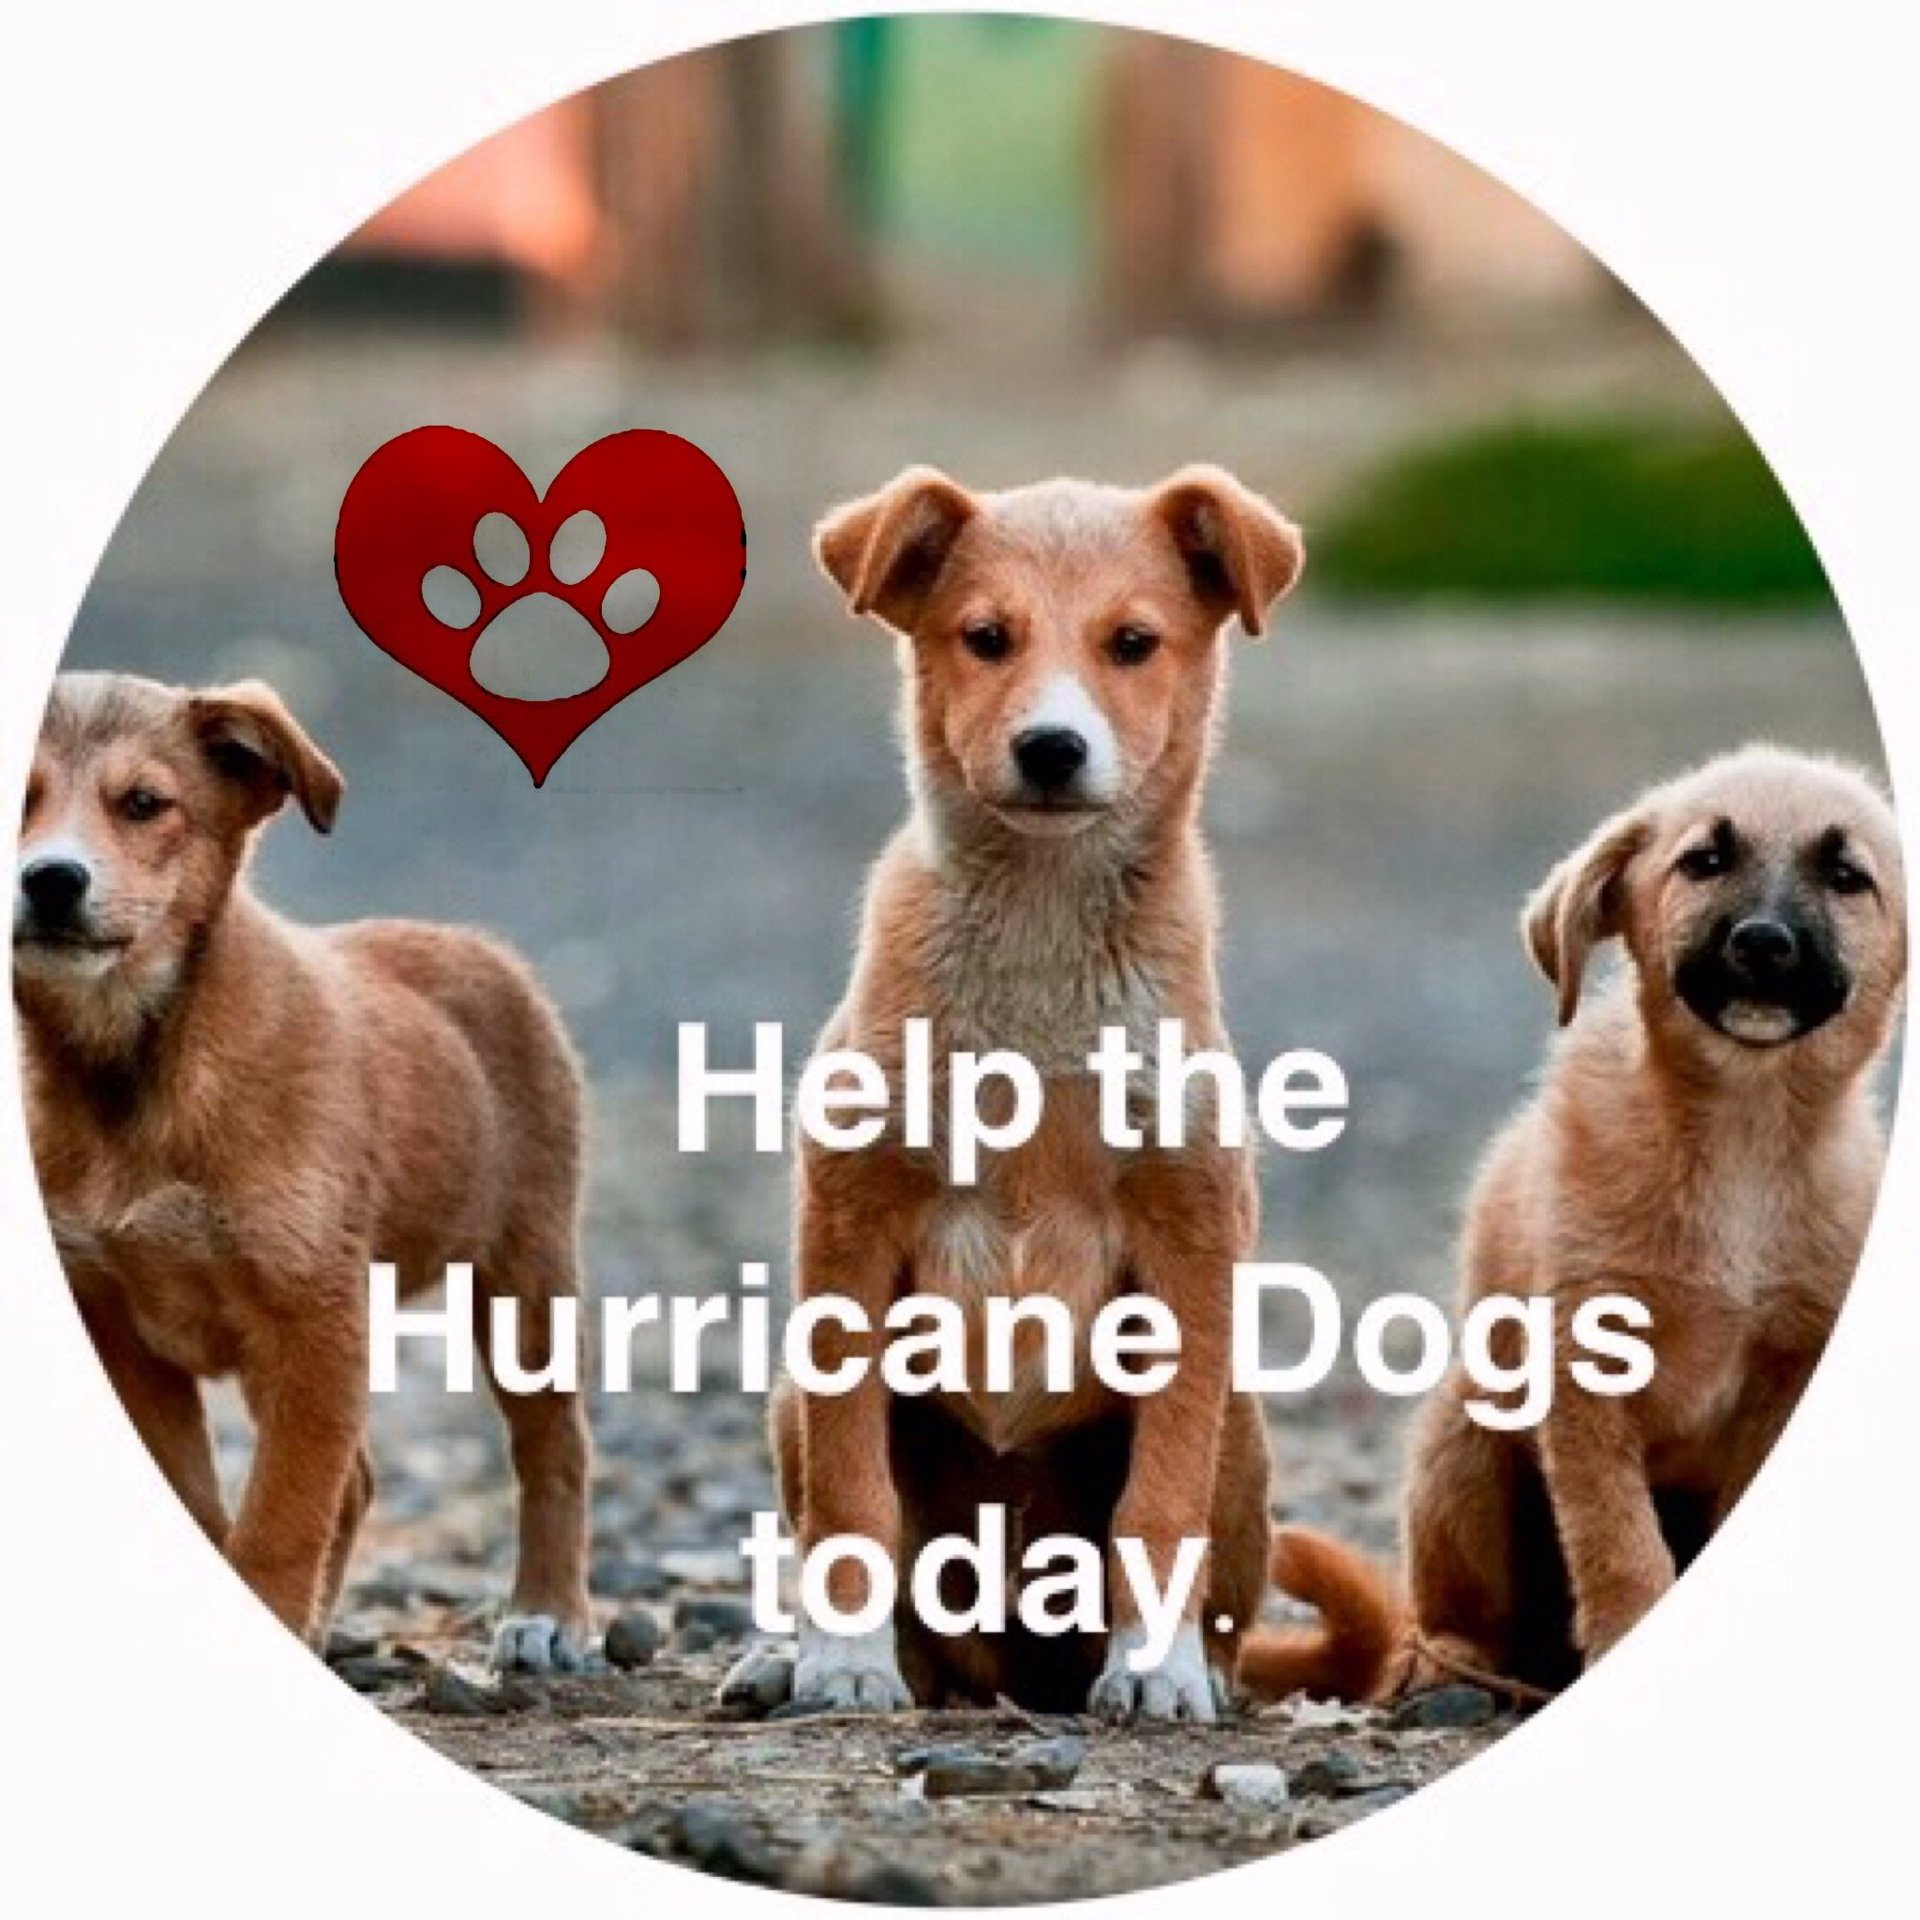 Help rescue dogs today